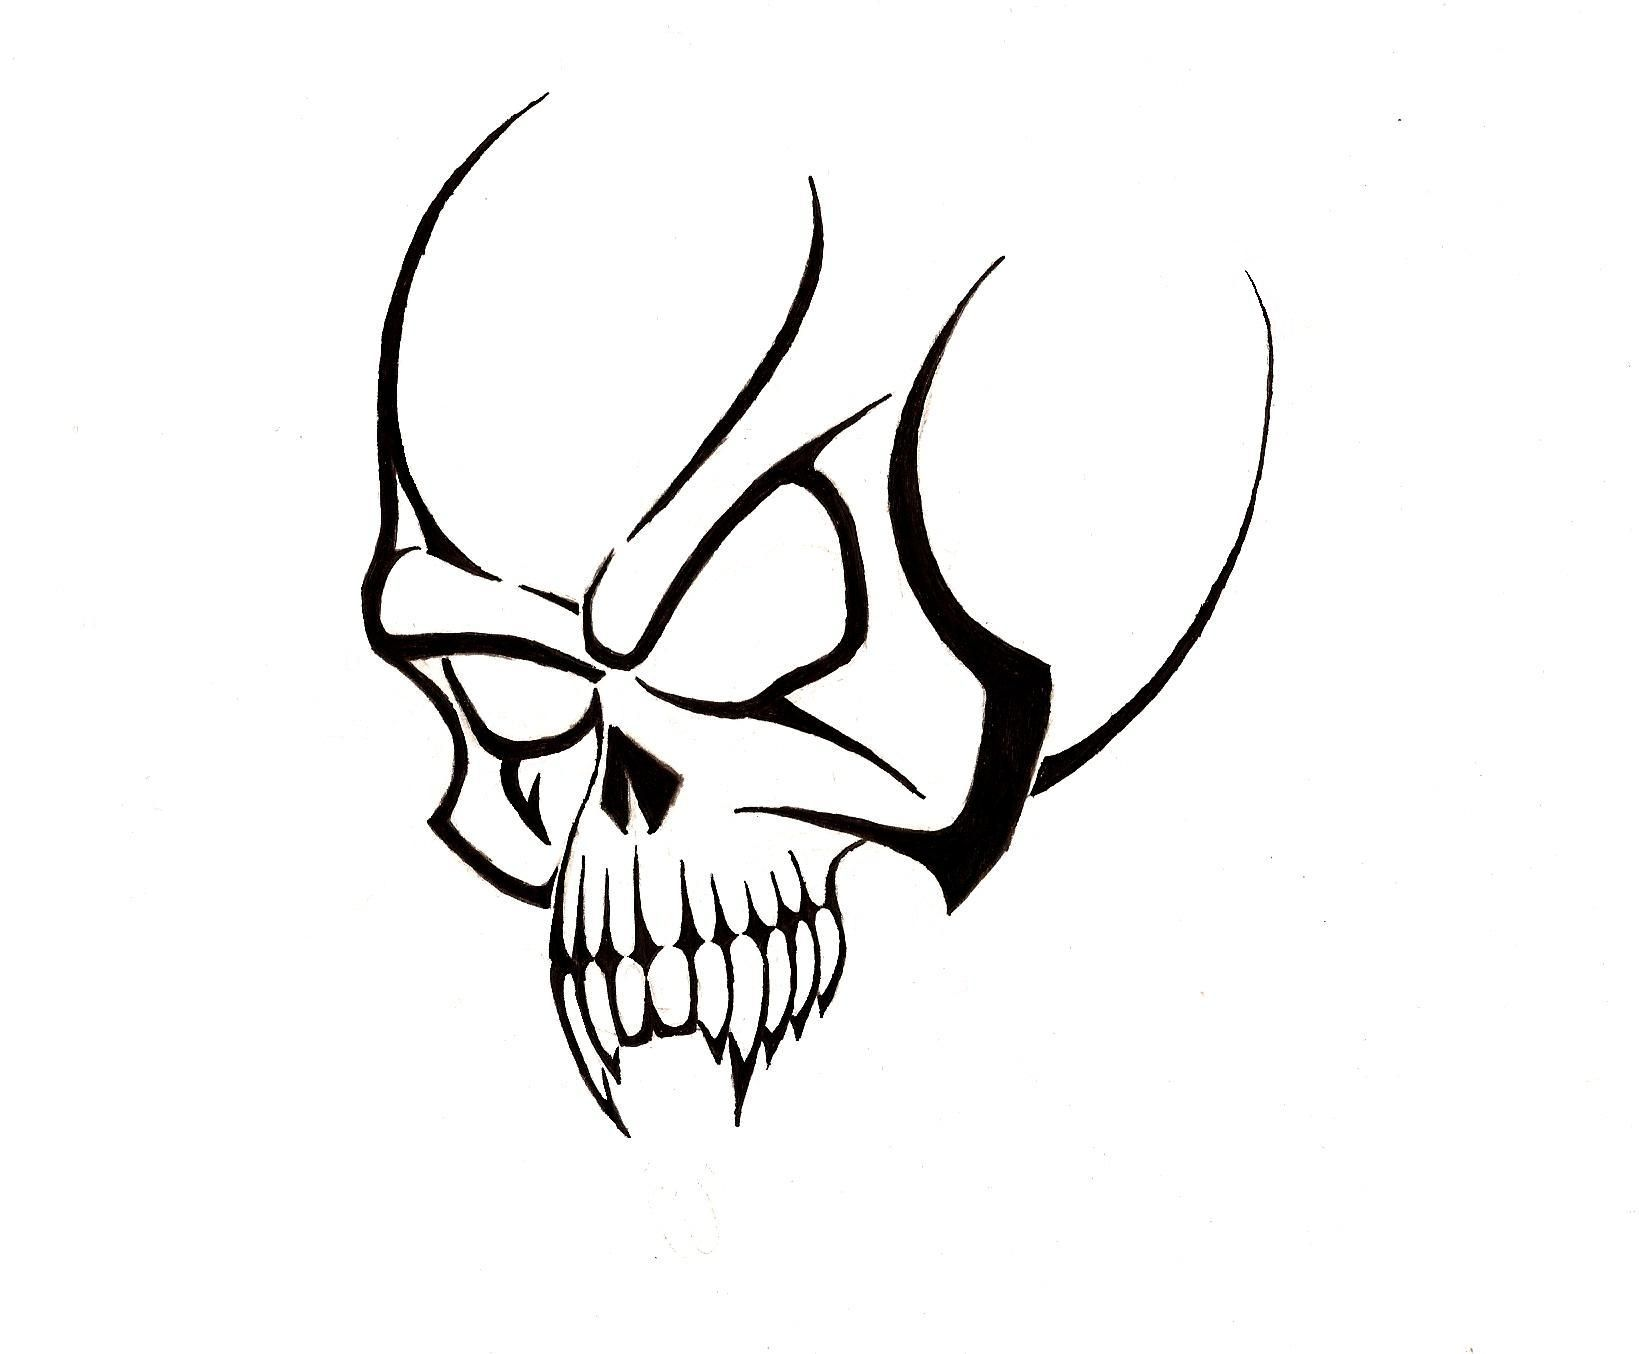 Free Skull Tattoo Designs To Print - ClipArt Best